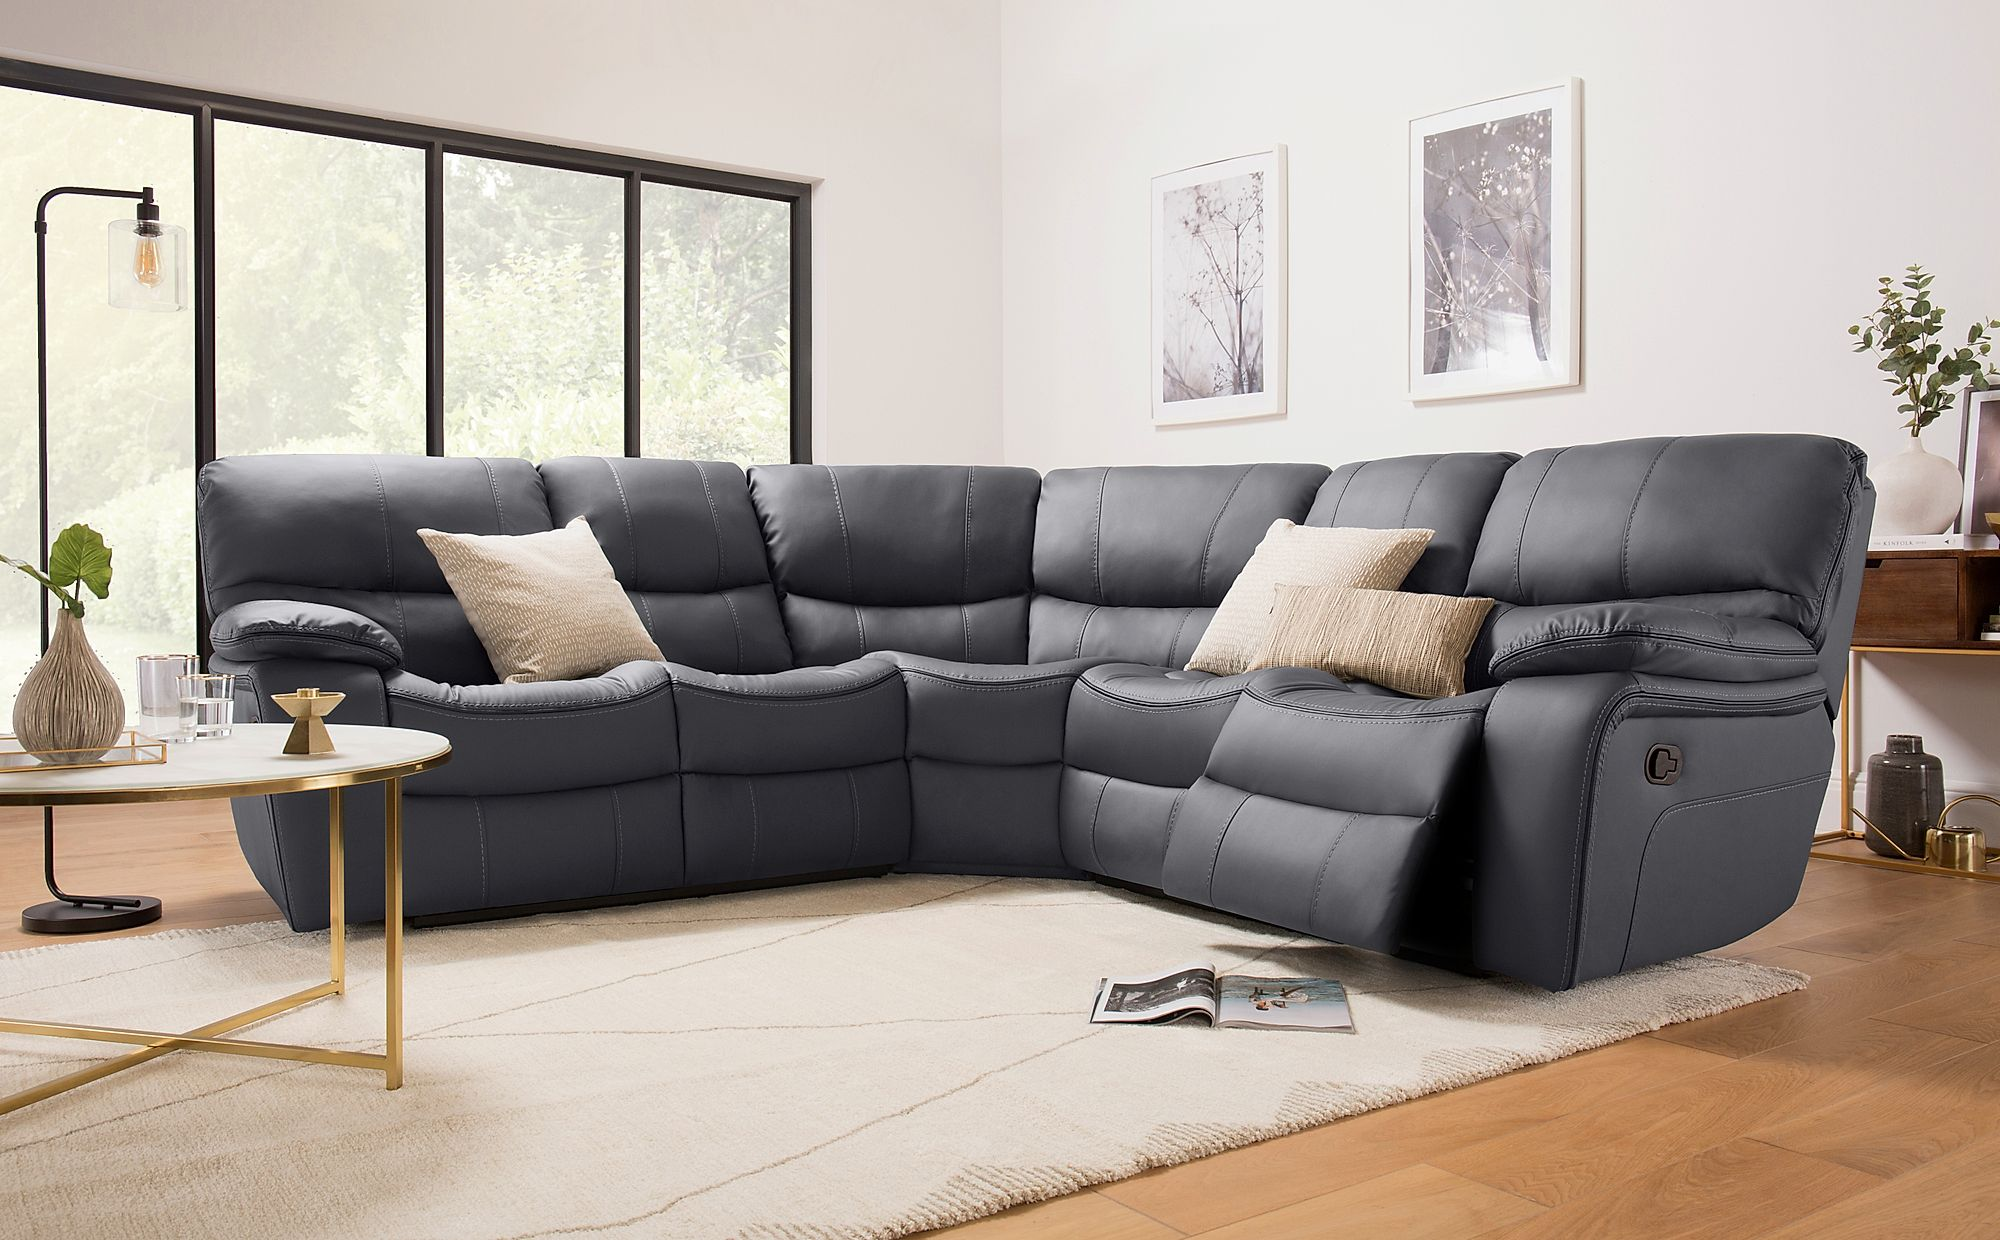 Astounding Beaumont Grey Leather Recliner Corner Sofa Download Free Architecture Designs Sospemadebymaigaardcom